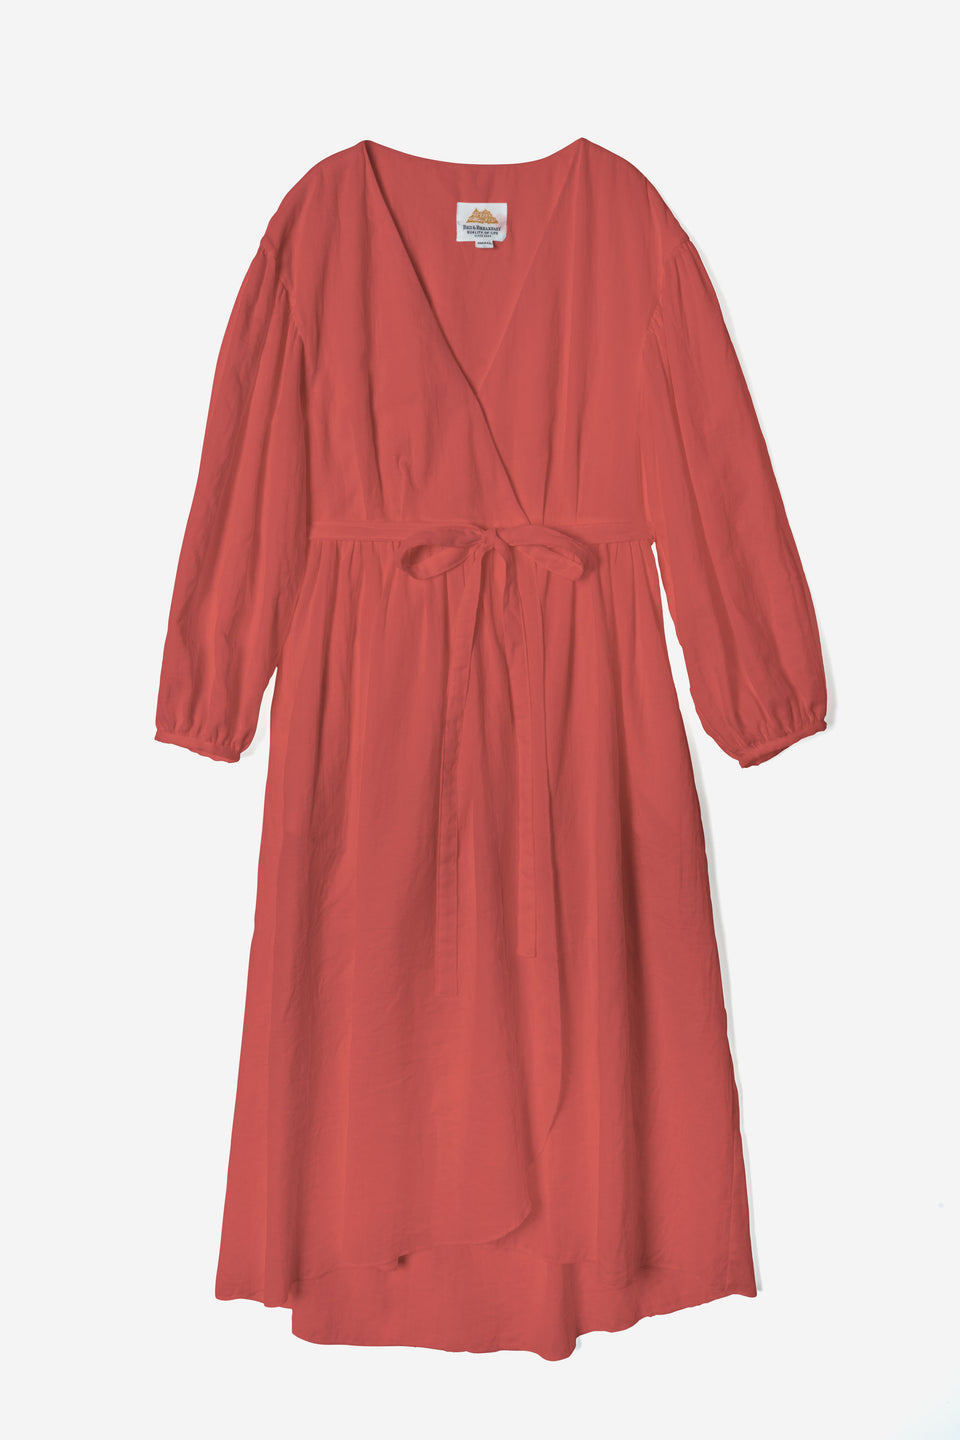 Soft Cotton Dress in Orange